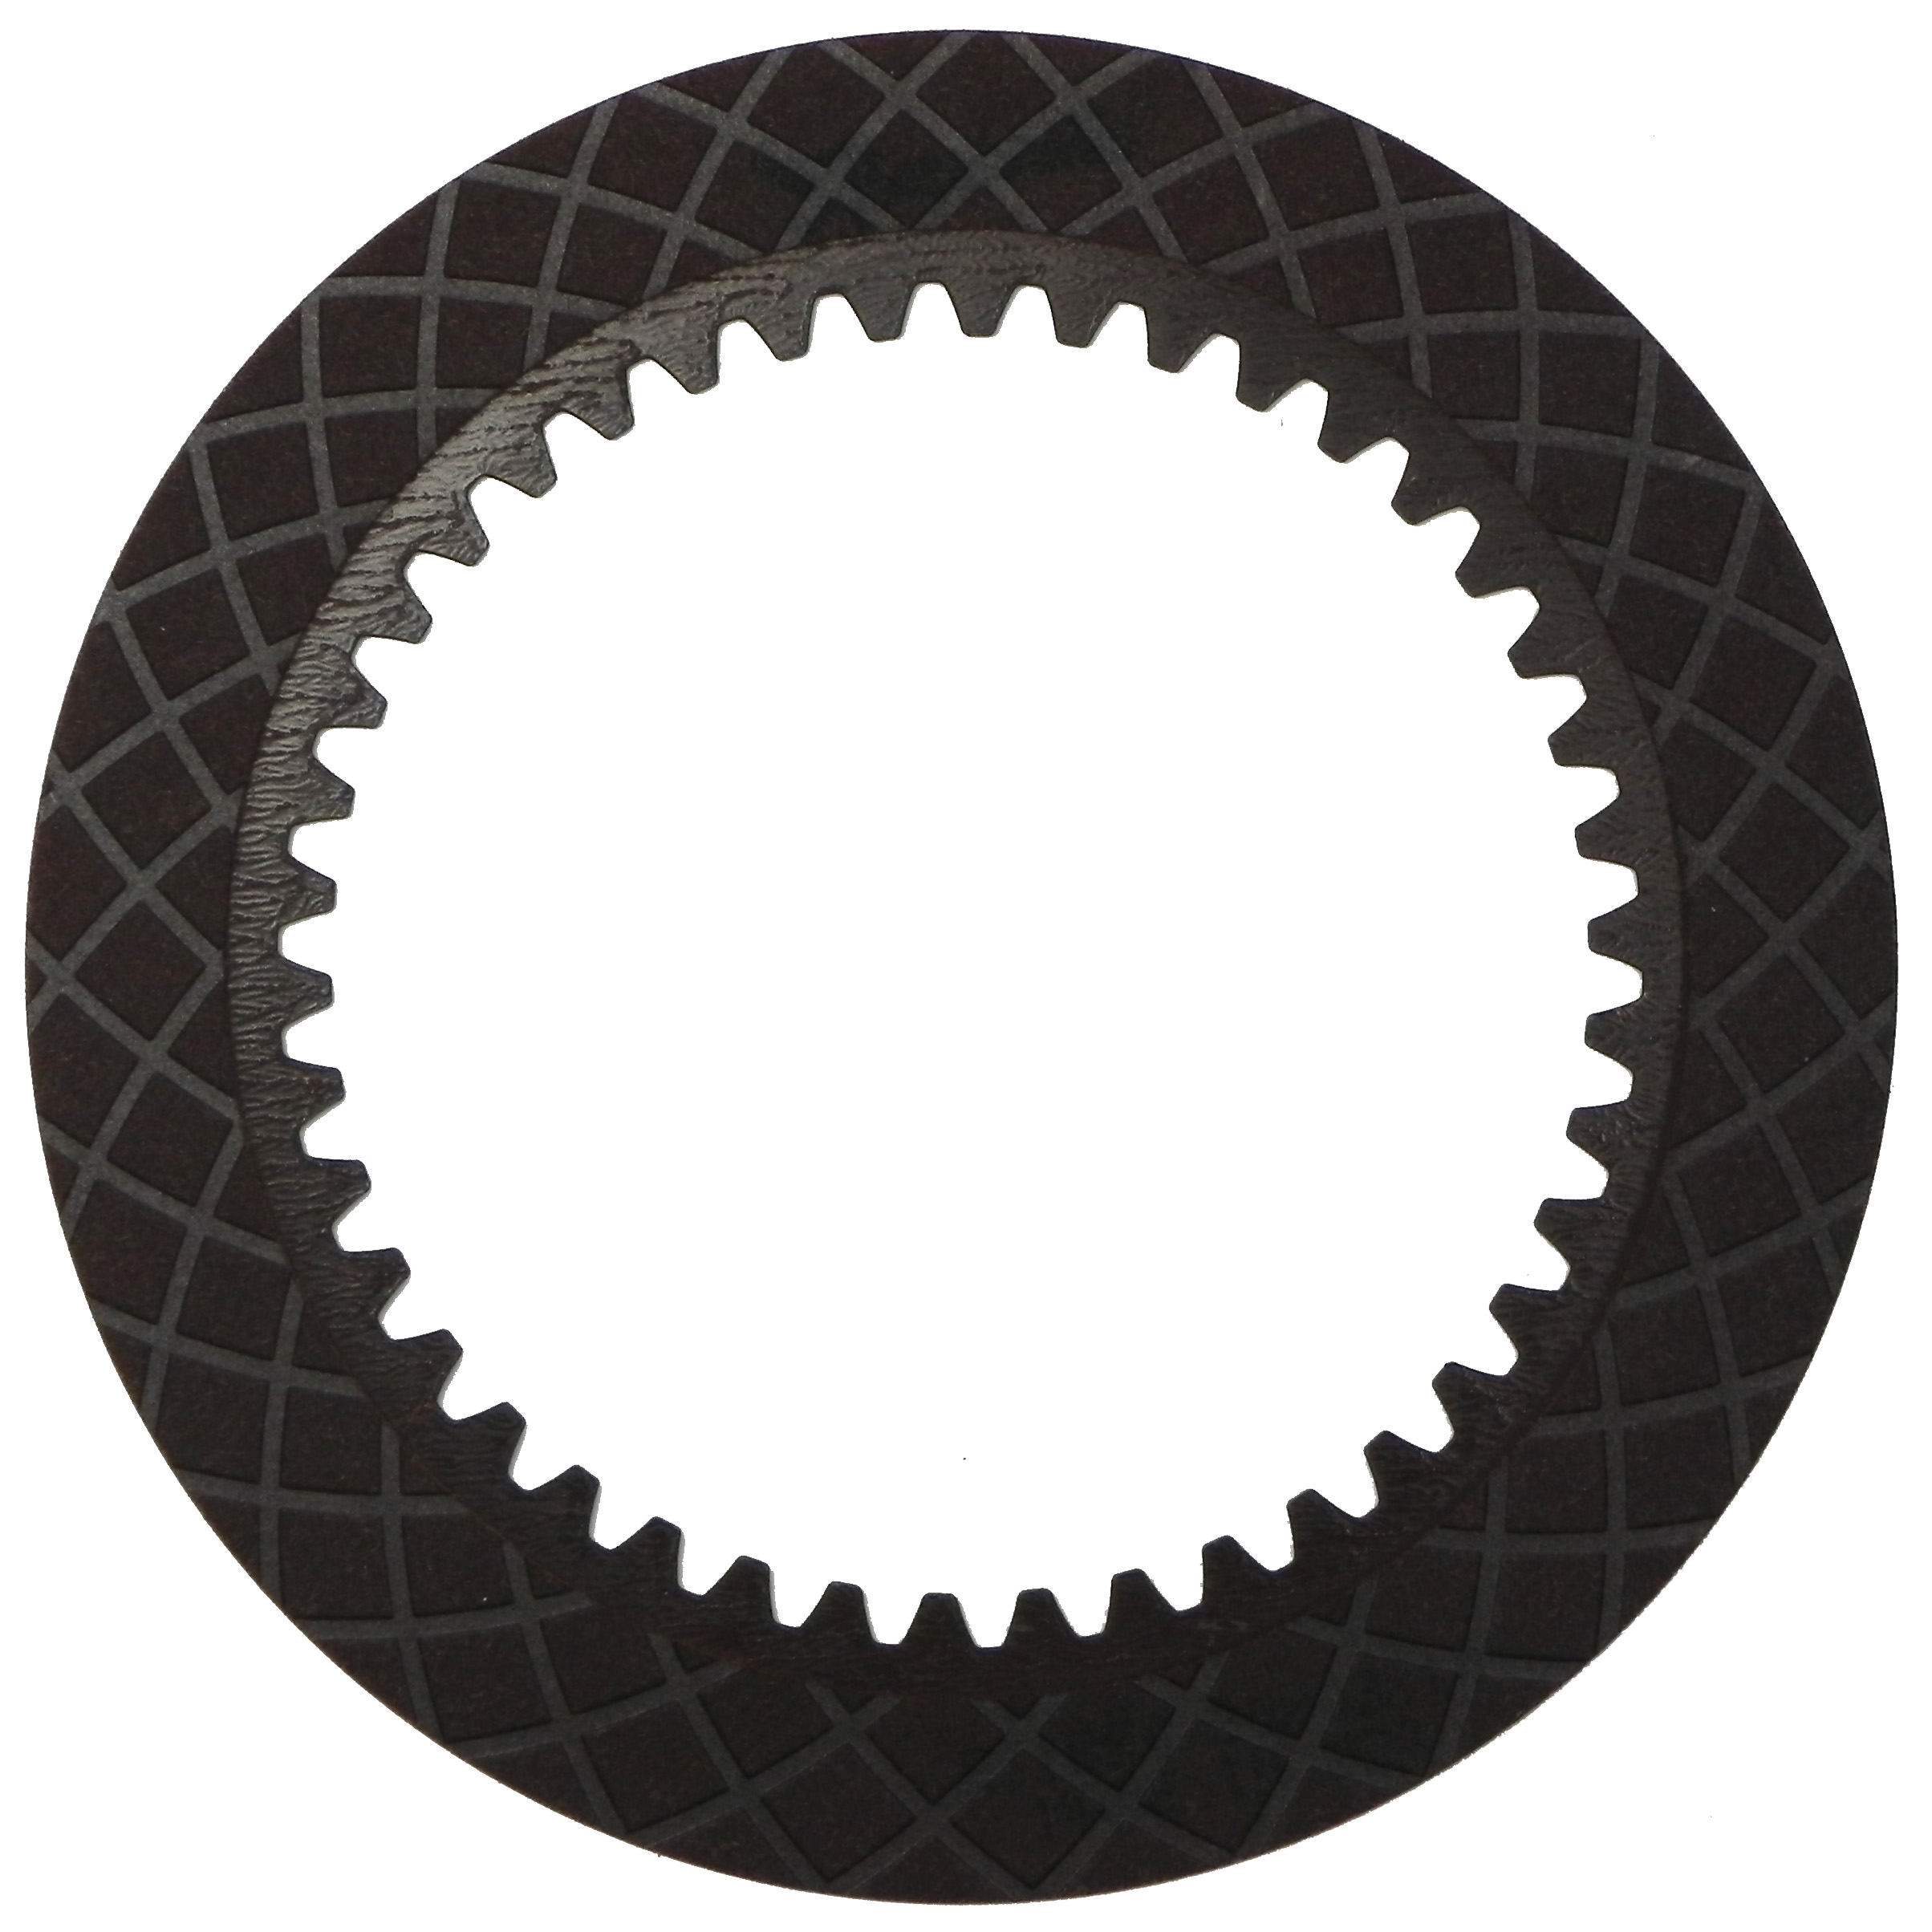 R571850 | 2000-2005 Friction Clutch Plate GPX 3rd GPX